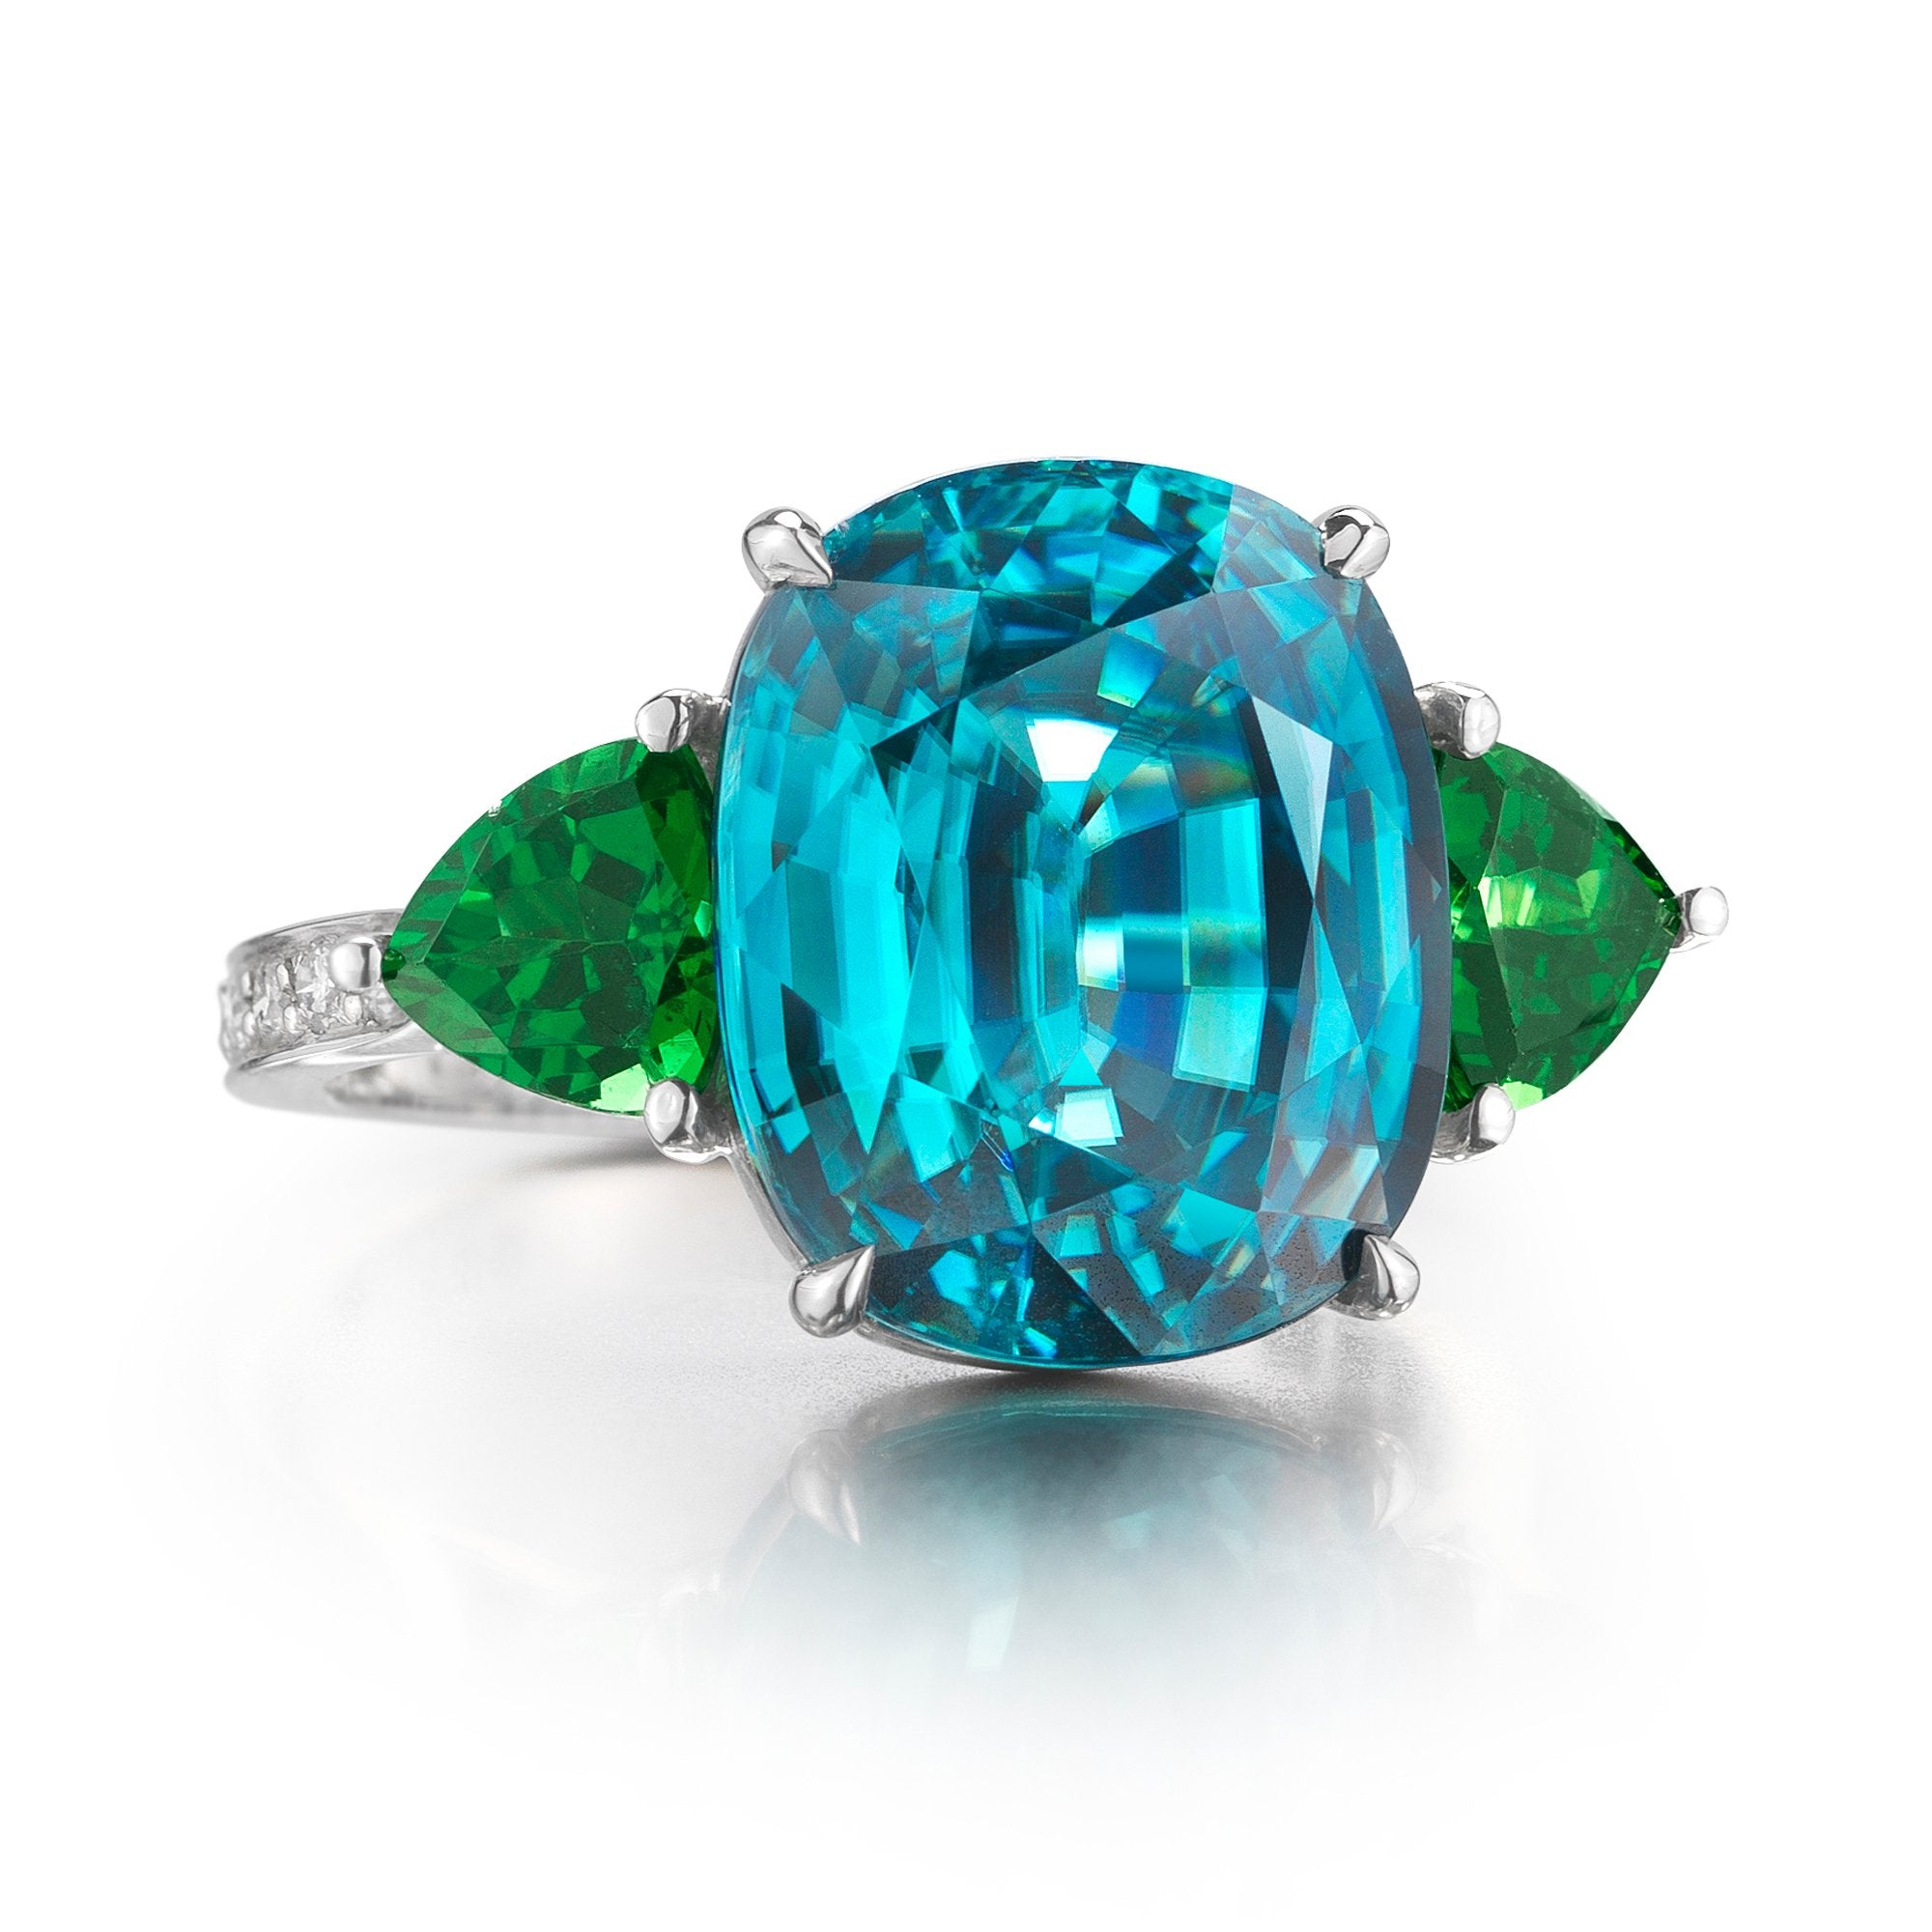 rings engagement false green gemstone scale crop subsampling shop hirsh upscale ring sapphire product